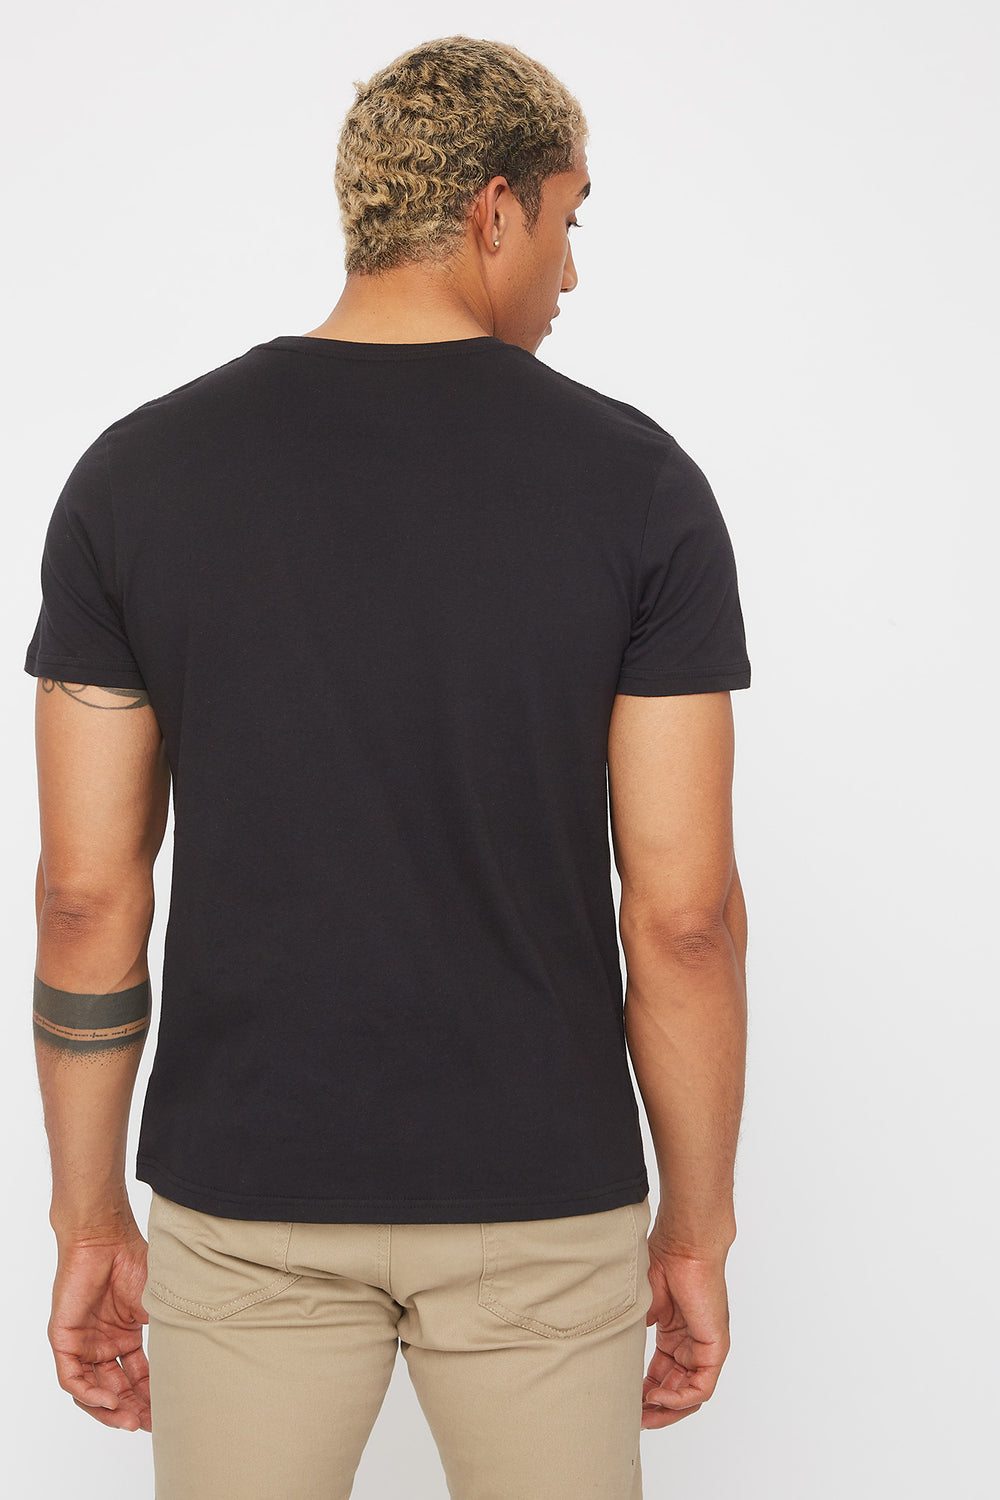 Legendary Los Angeles Grid Graphic T-Shirt Black